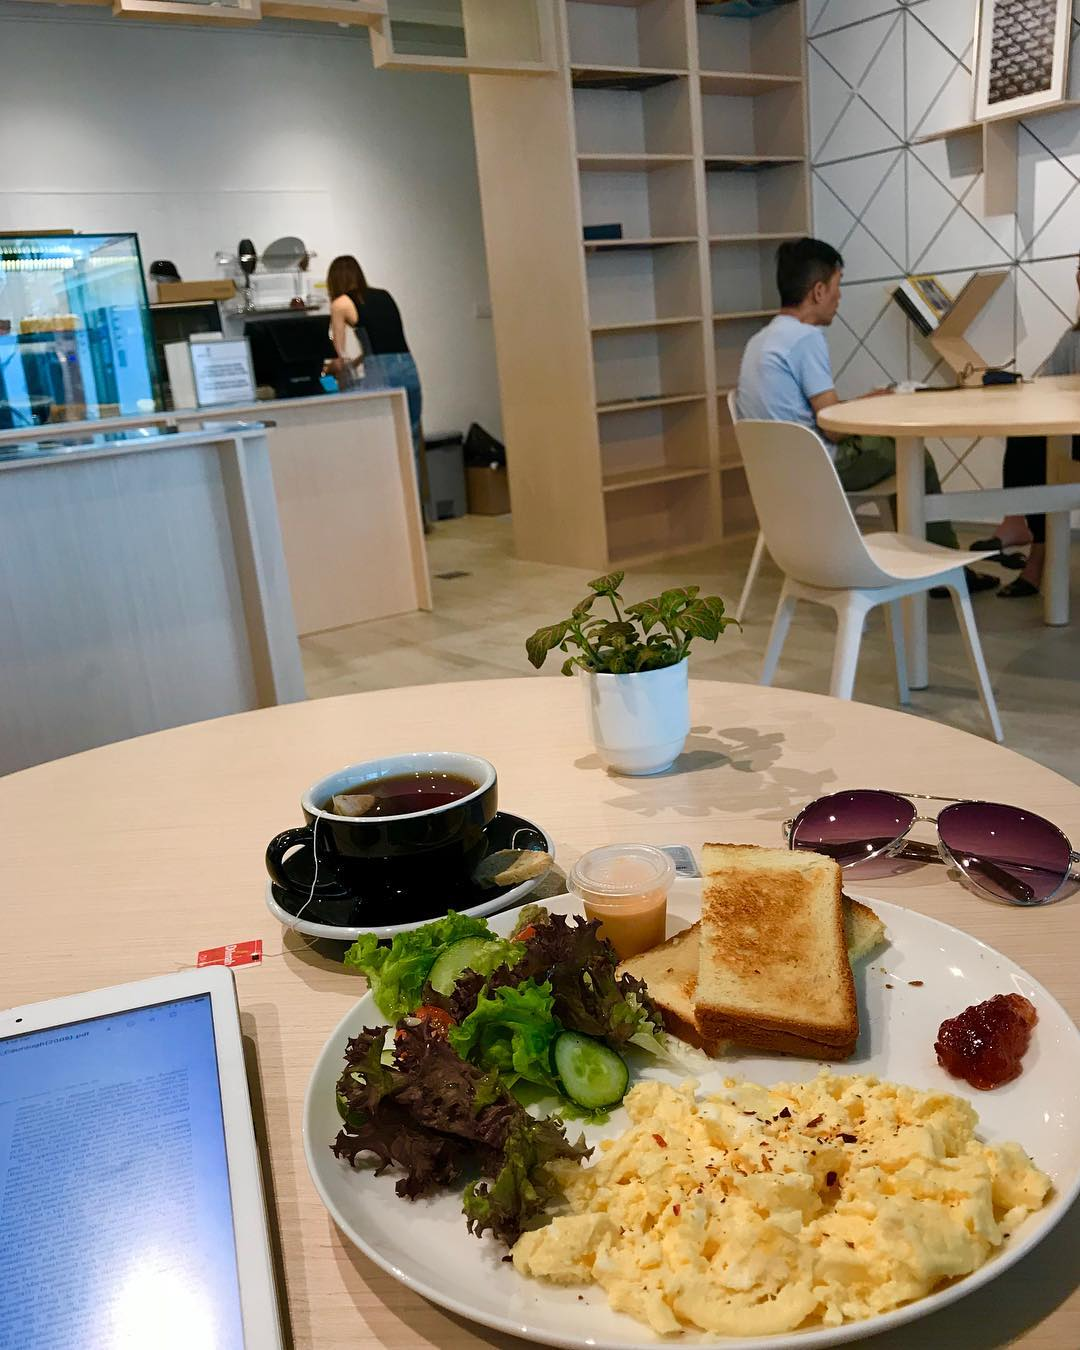 Feb 2018 cafes and restaurants (13) - Seeds Cafe food and interior